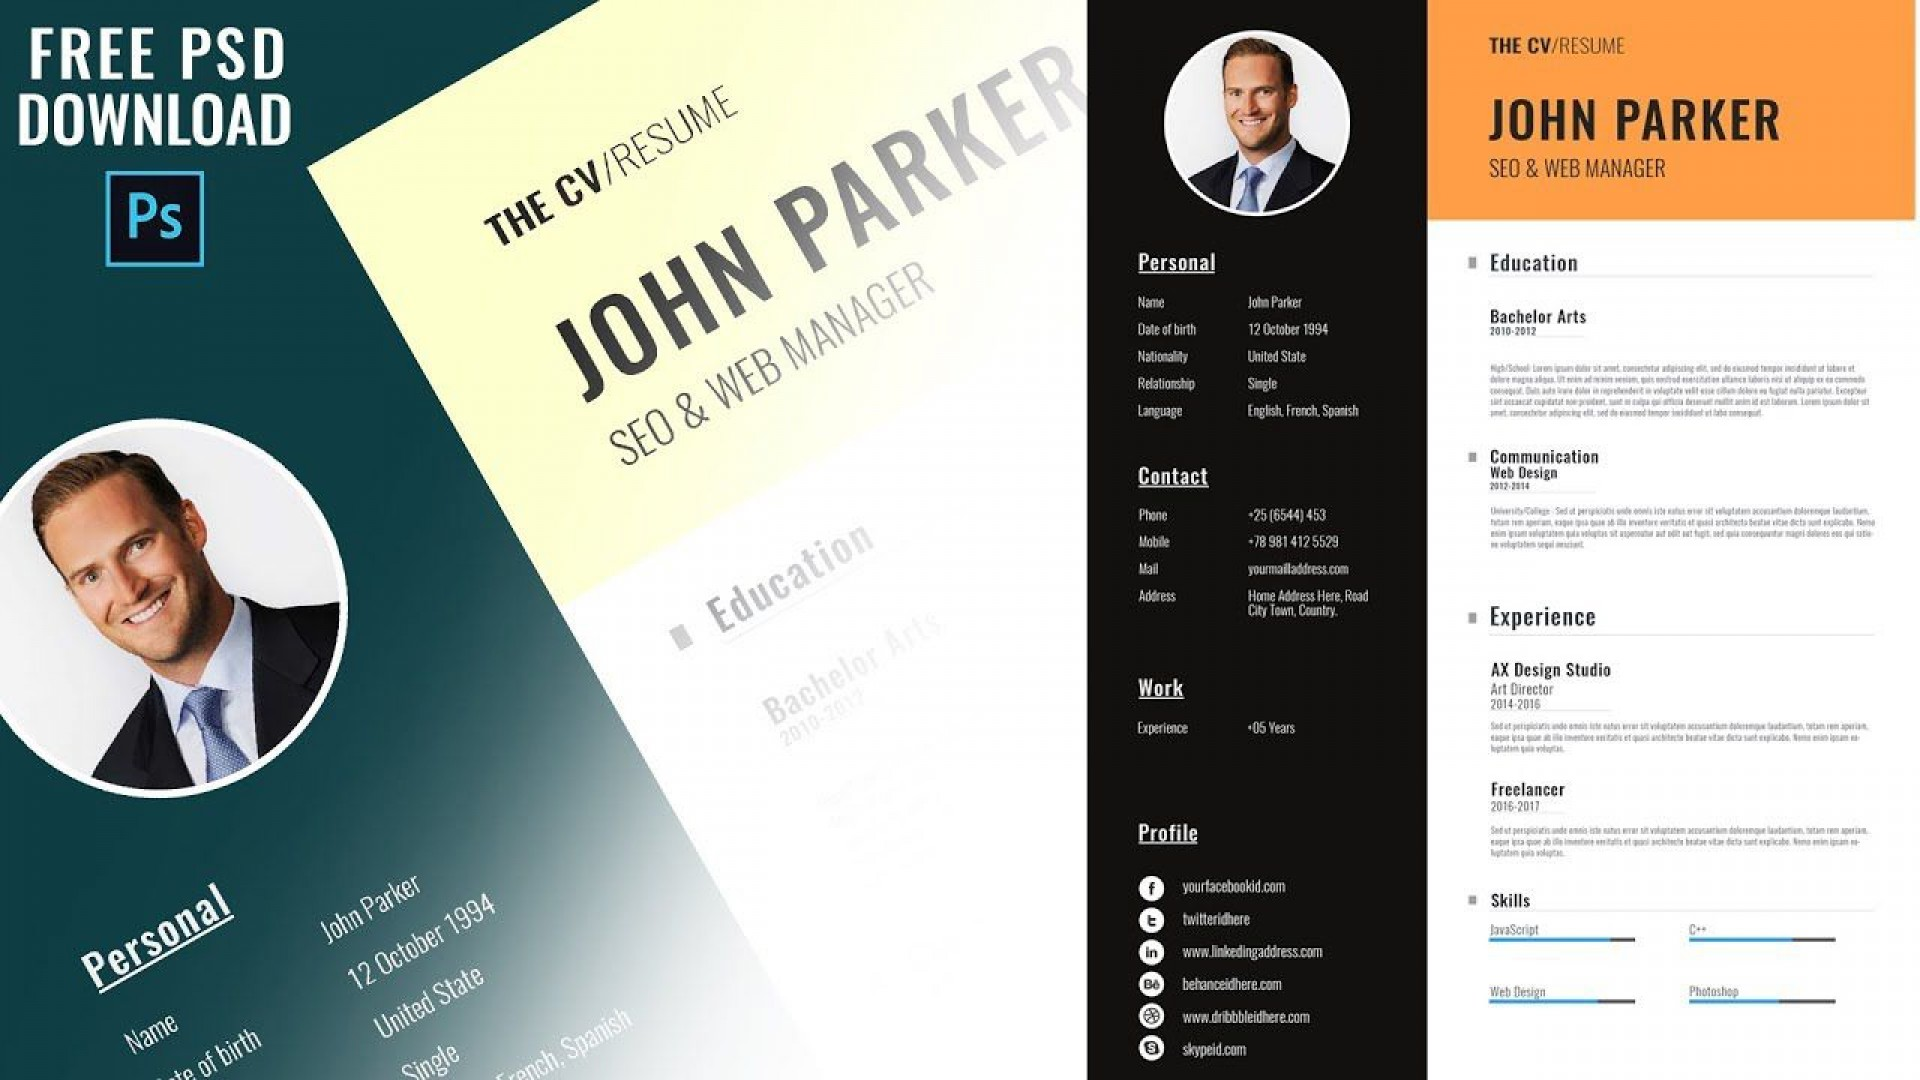 006 Impressive Photoshop Cv Template Free Download Image  Creative Resume Psd Adobe1920